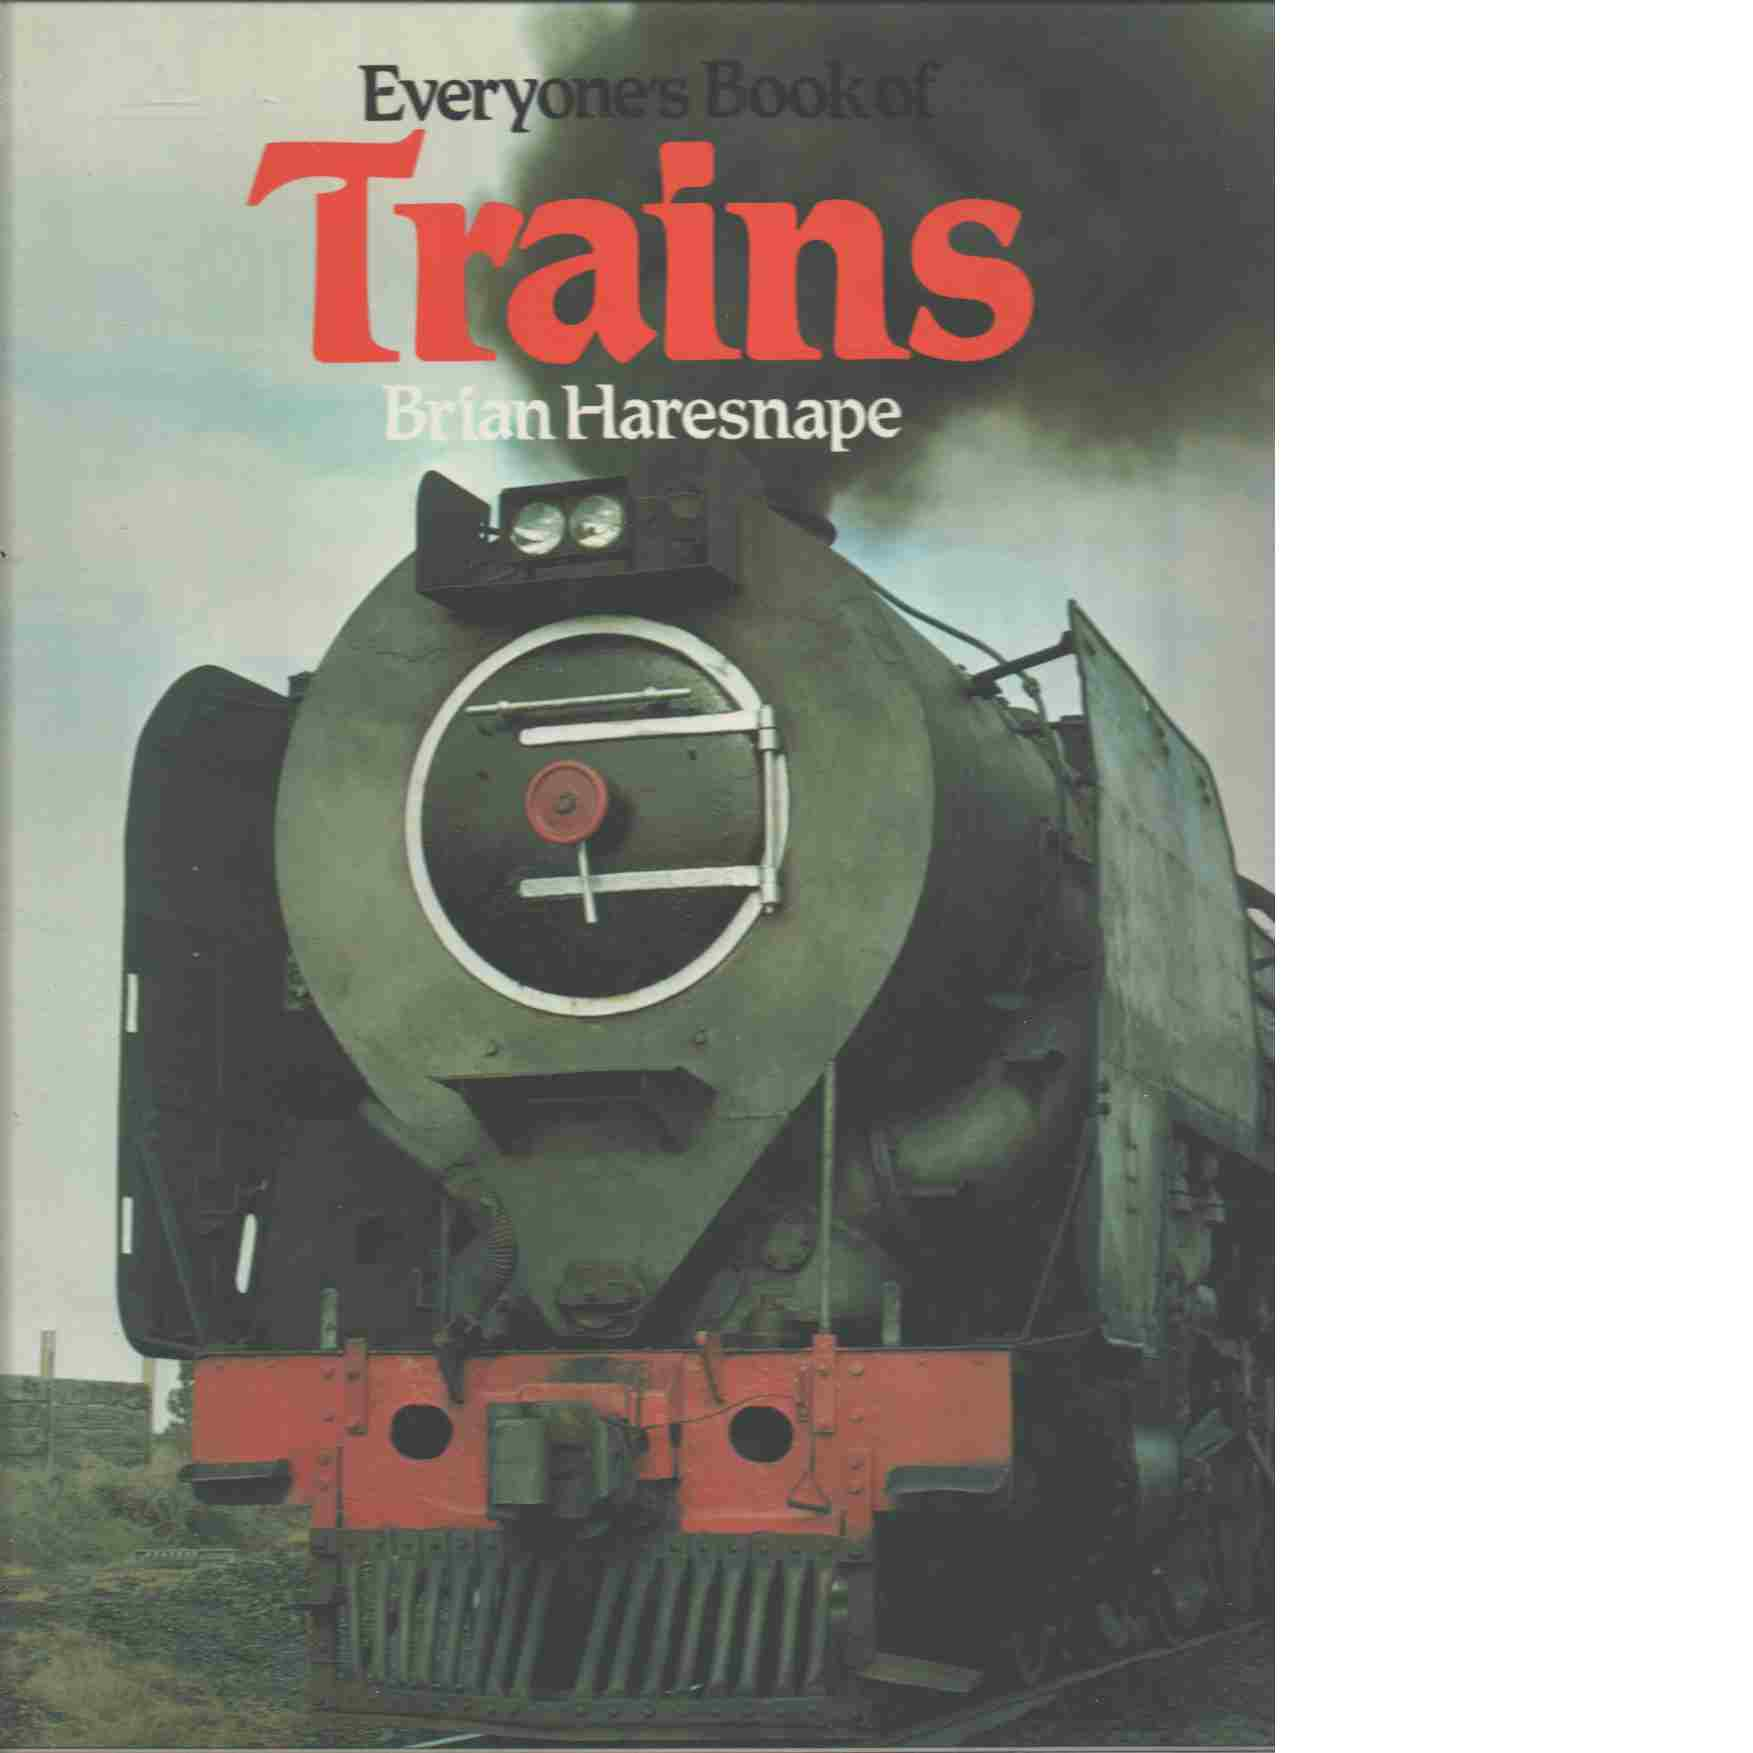 Everyone's Book Of Trains - Haresnape Brian